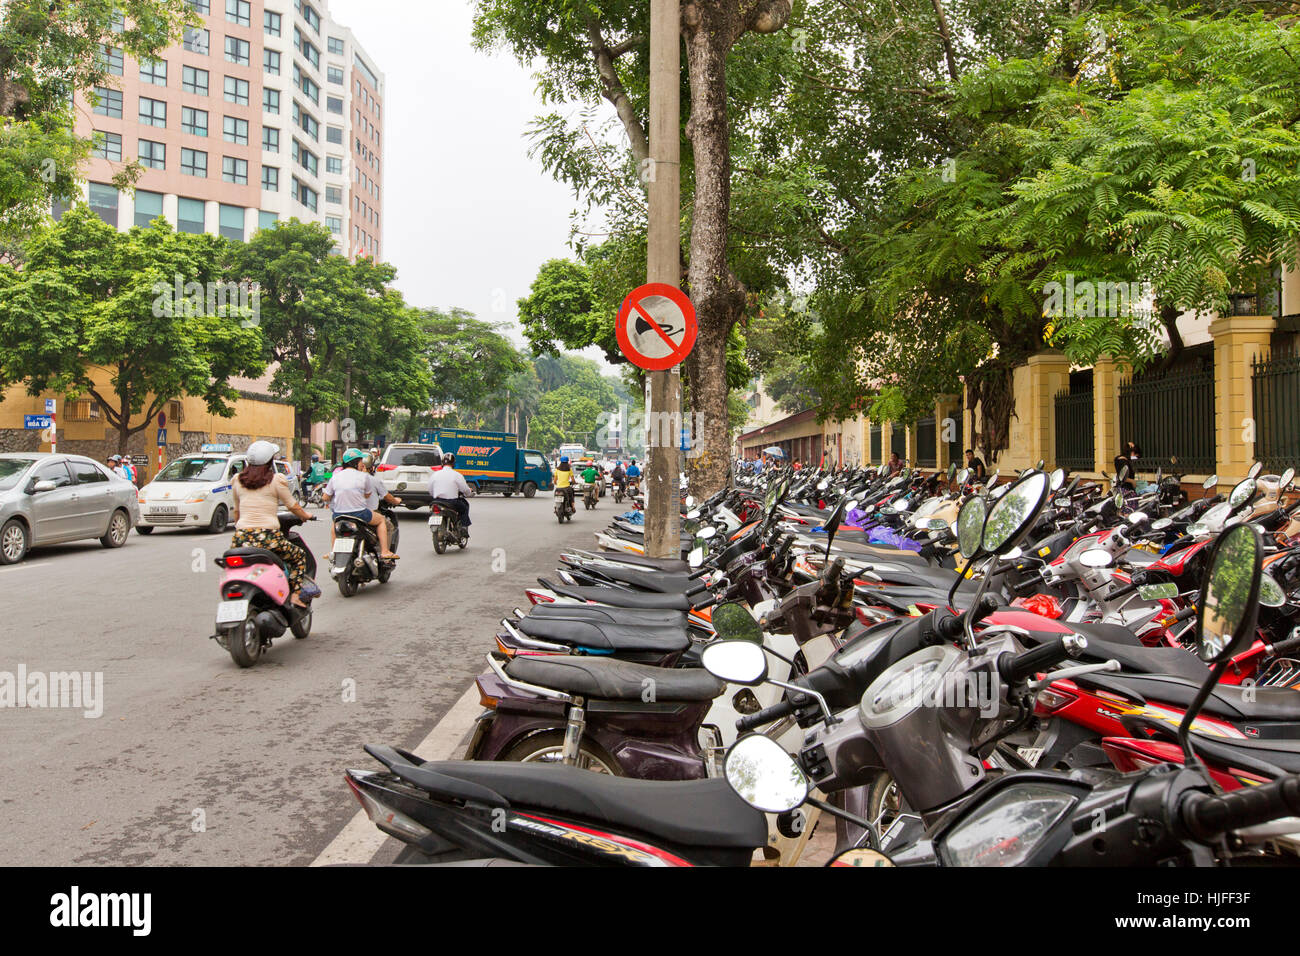 City street,  row of motorcycles & scooters parked on sidewalk. - Stock Image